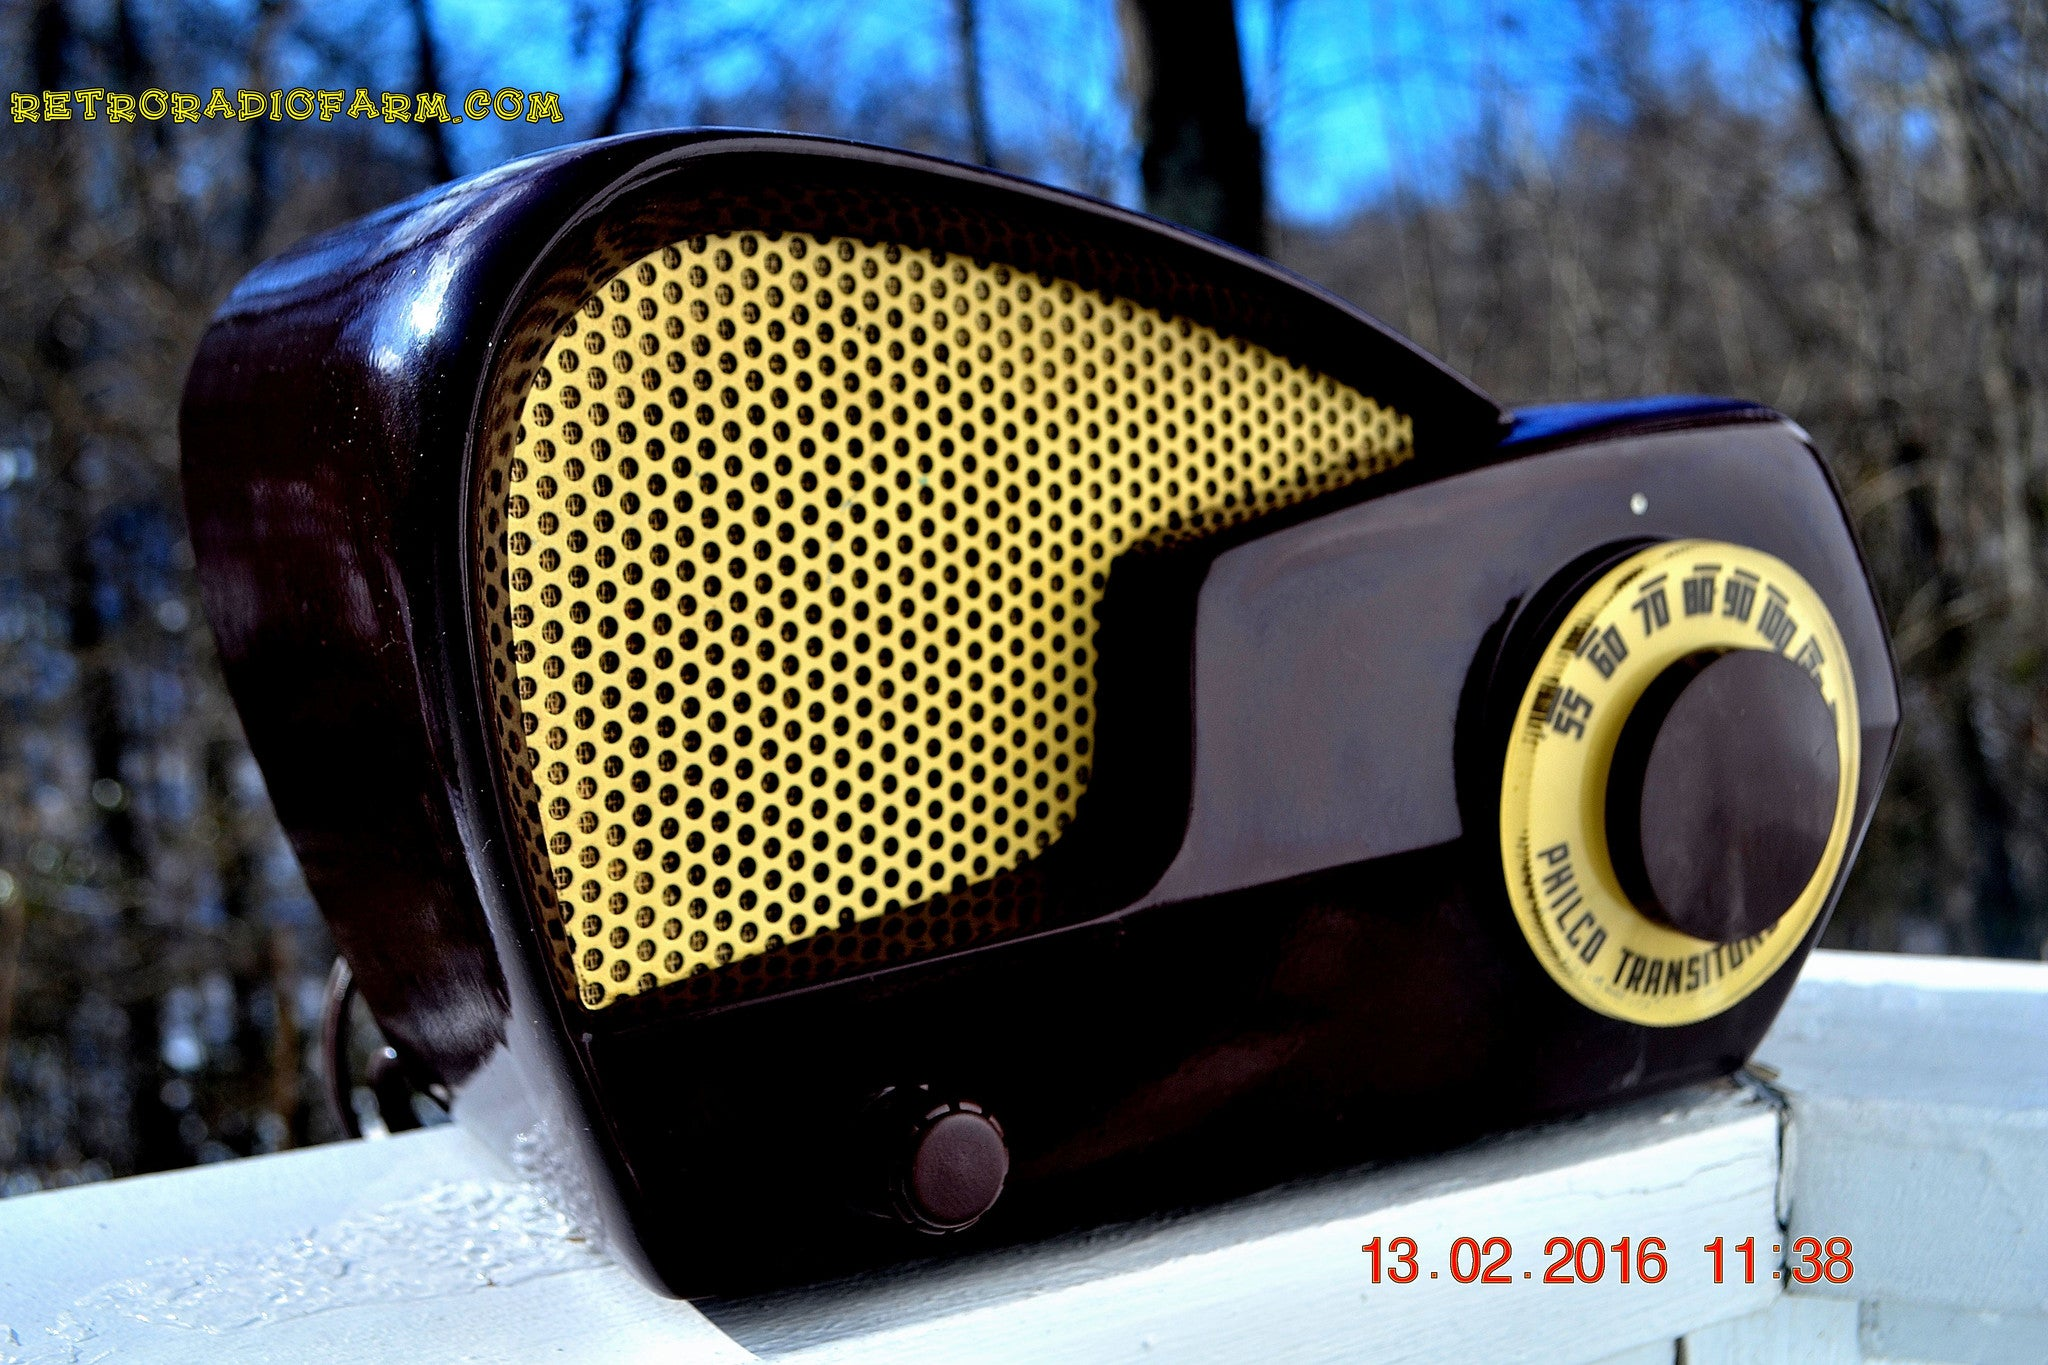 SOLD! - Jan 6, 2016 - Repair and restore 1949 Philco 49-501 AM Bakelite Tube Radio Works! Wow! - [product_type} - Philco - Retro Radio Farm